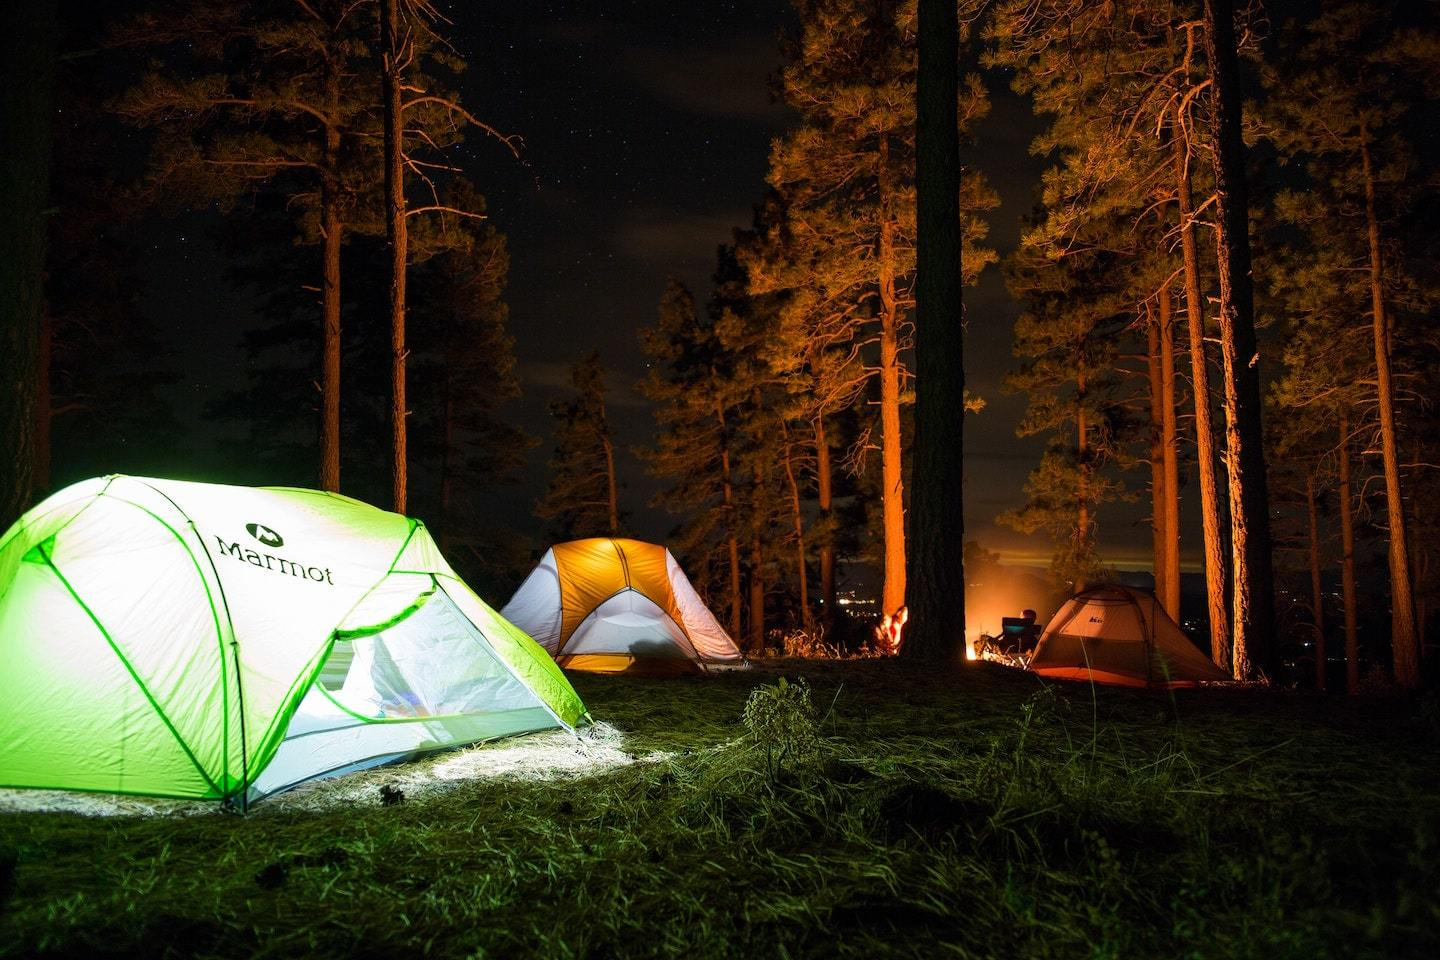 camping in forest with trees surrounding tents